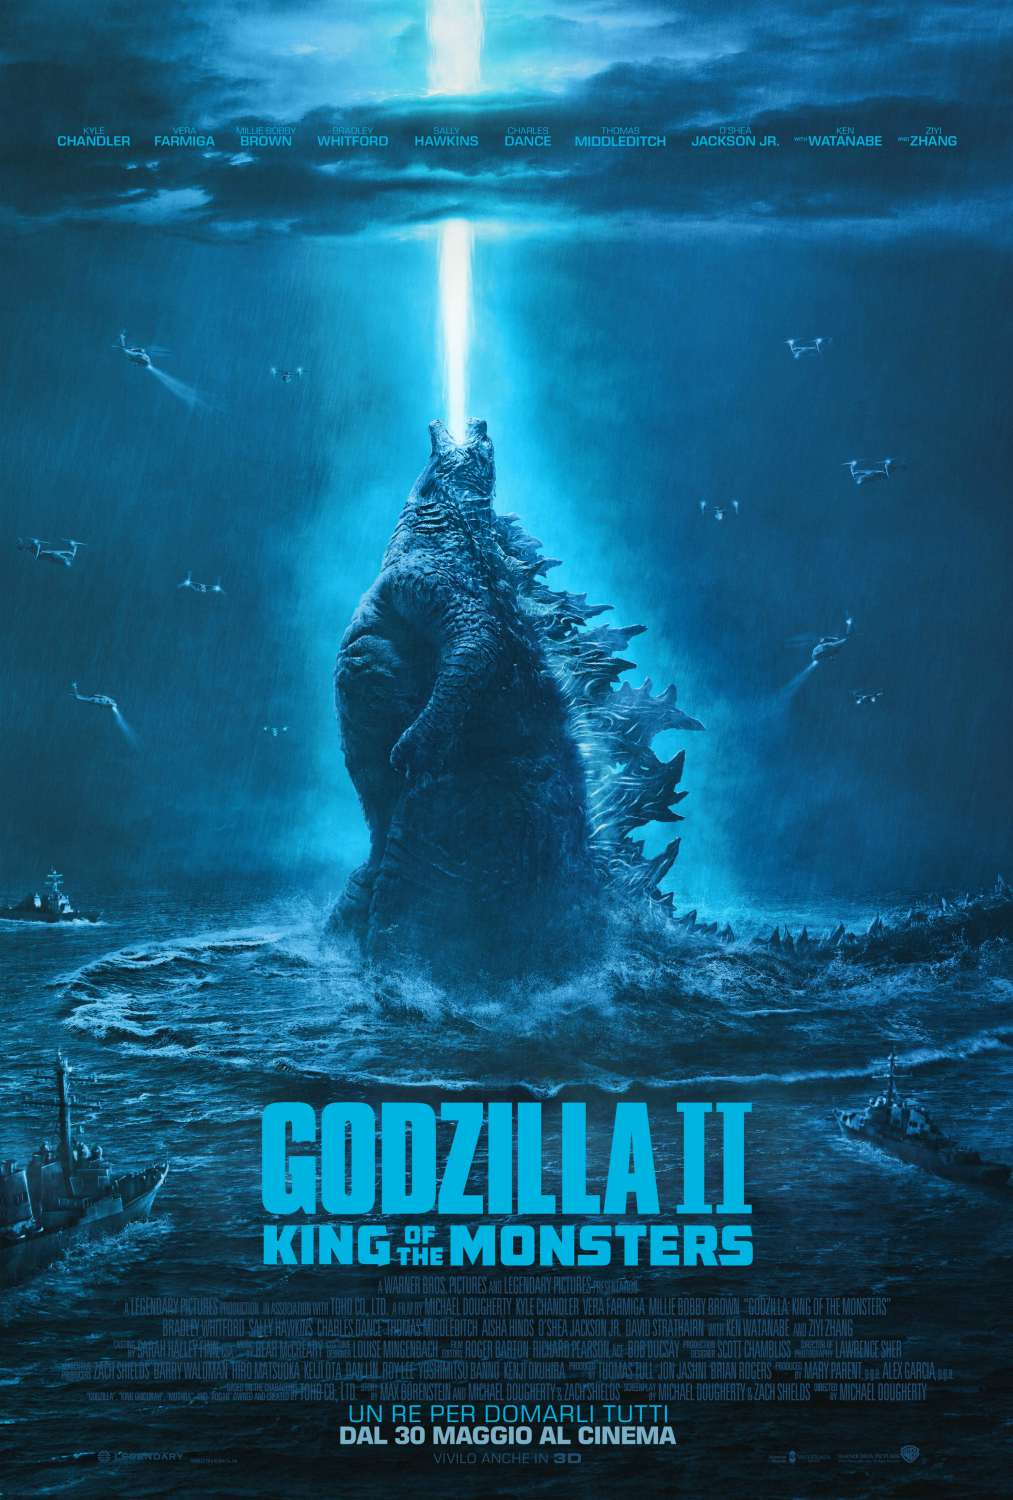 Godzilla: King of the Monsters (2019) Official Full Movie Free Online